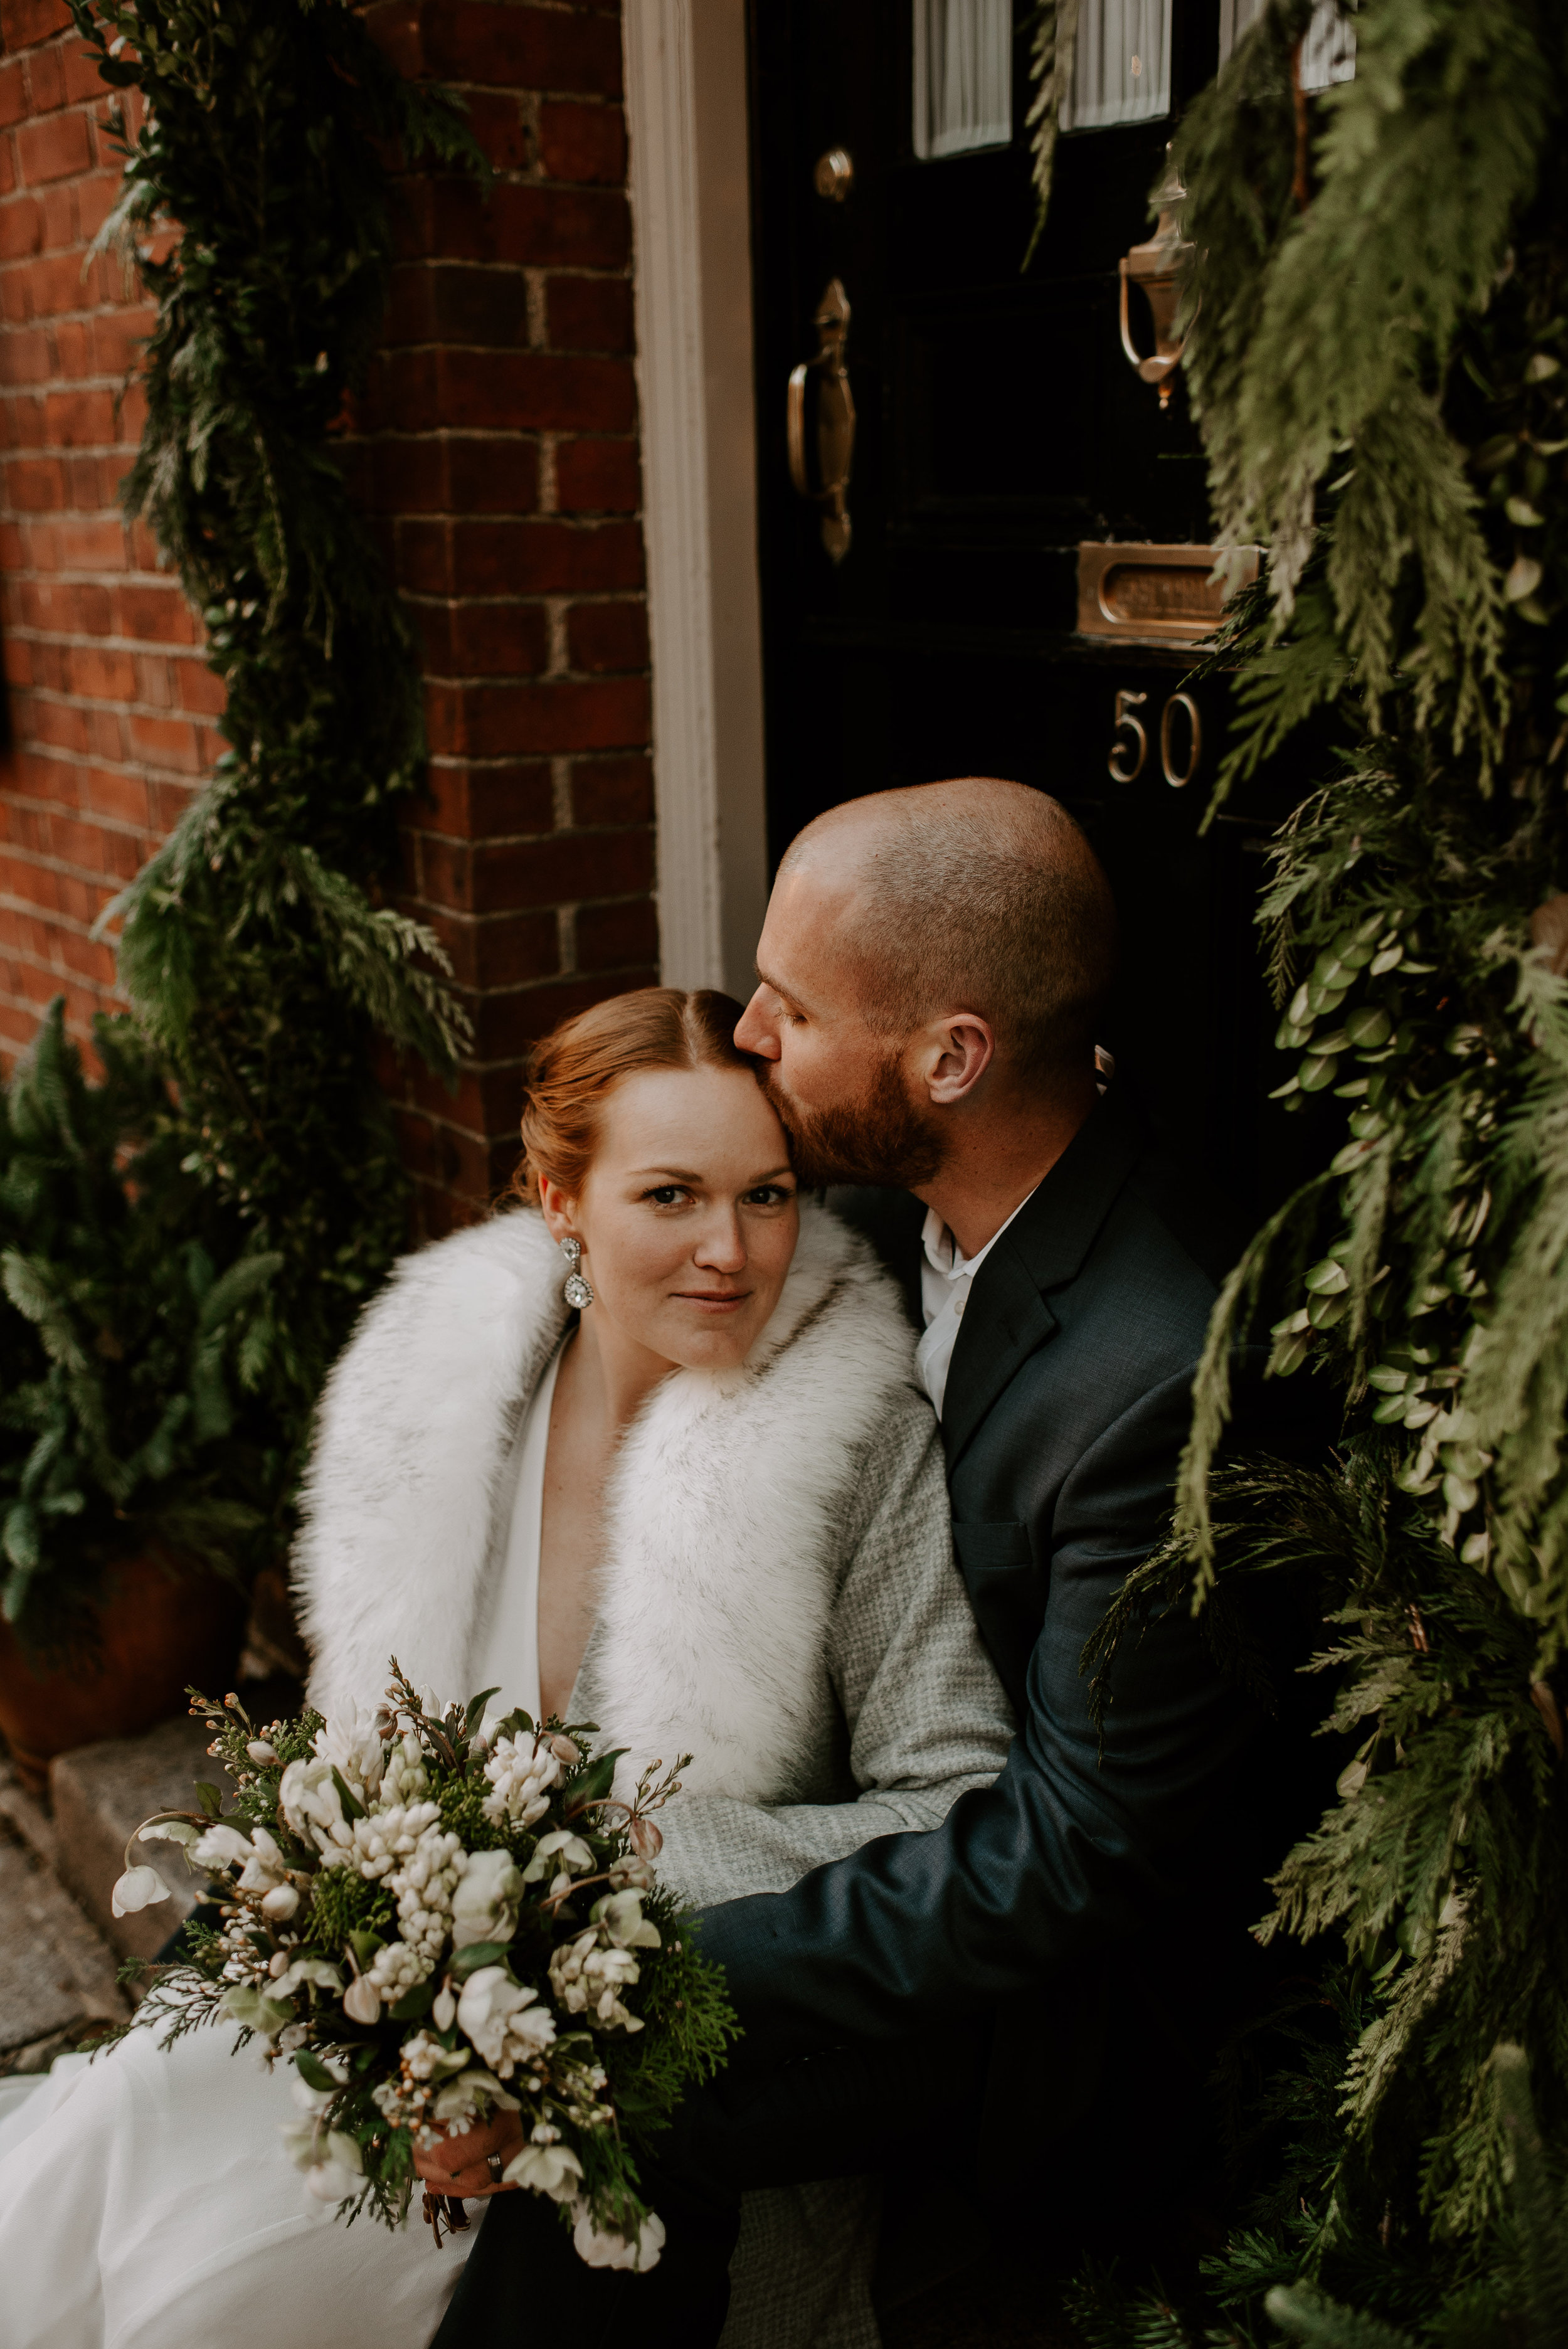 Dramatic and Moody Christmastime Elopement in Beacon Hill Boston | Boston Wedding Photographer | Madeline Rose Photography Co.